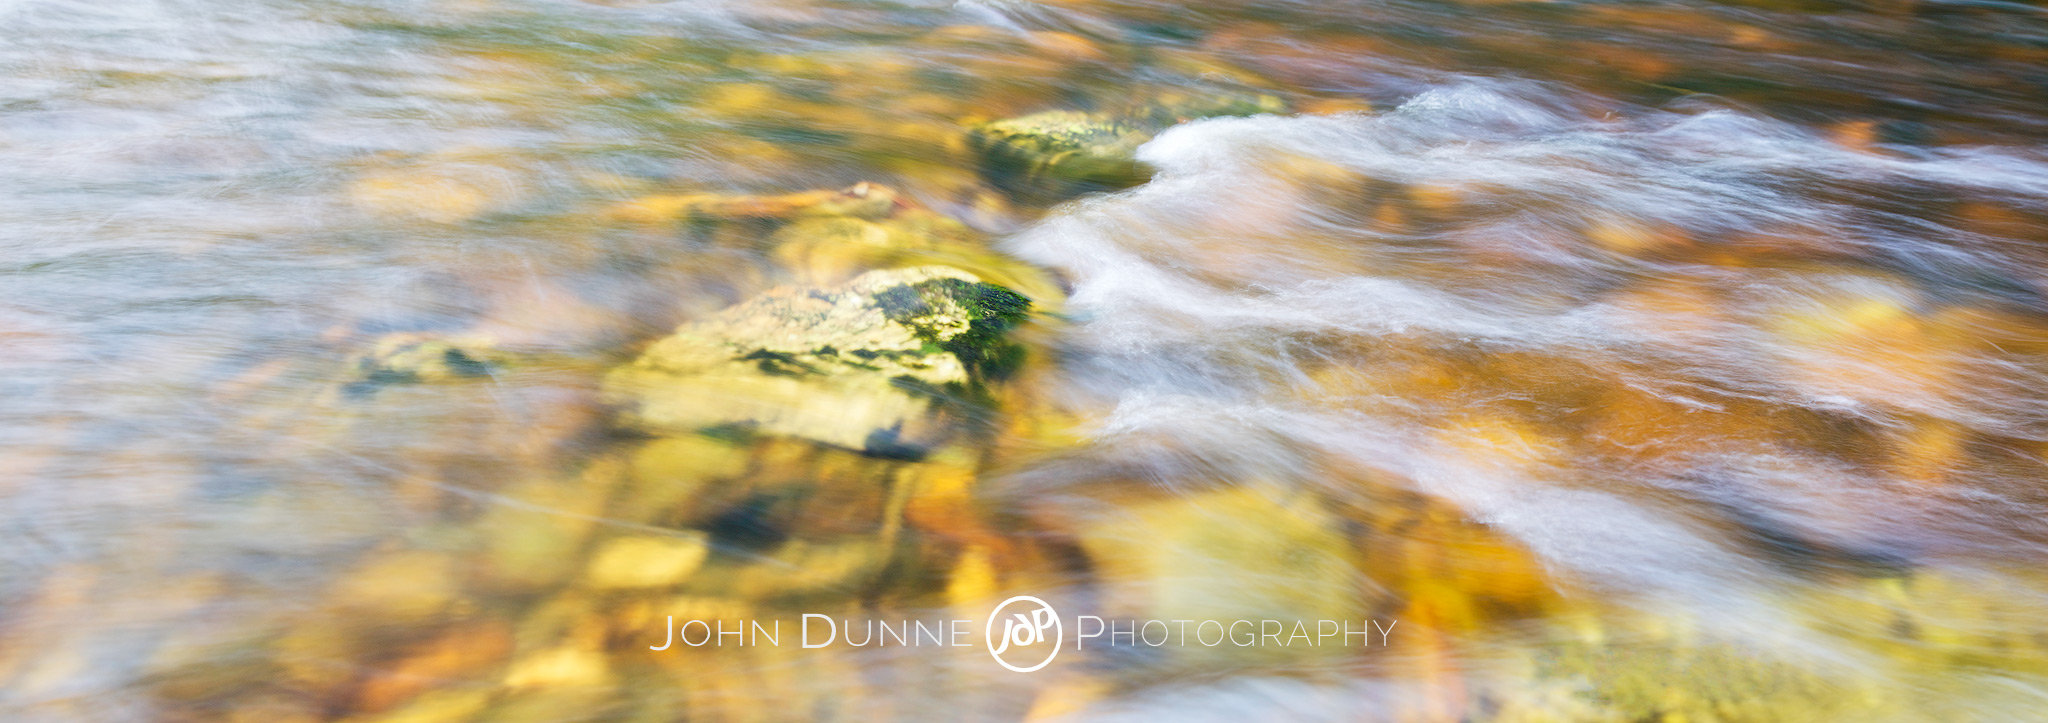 Water Abstract #1 by John Dunne.